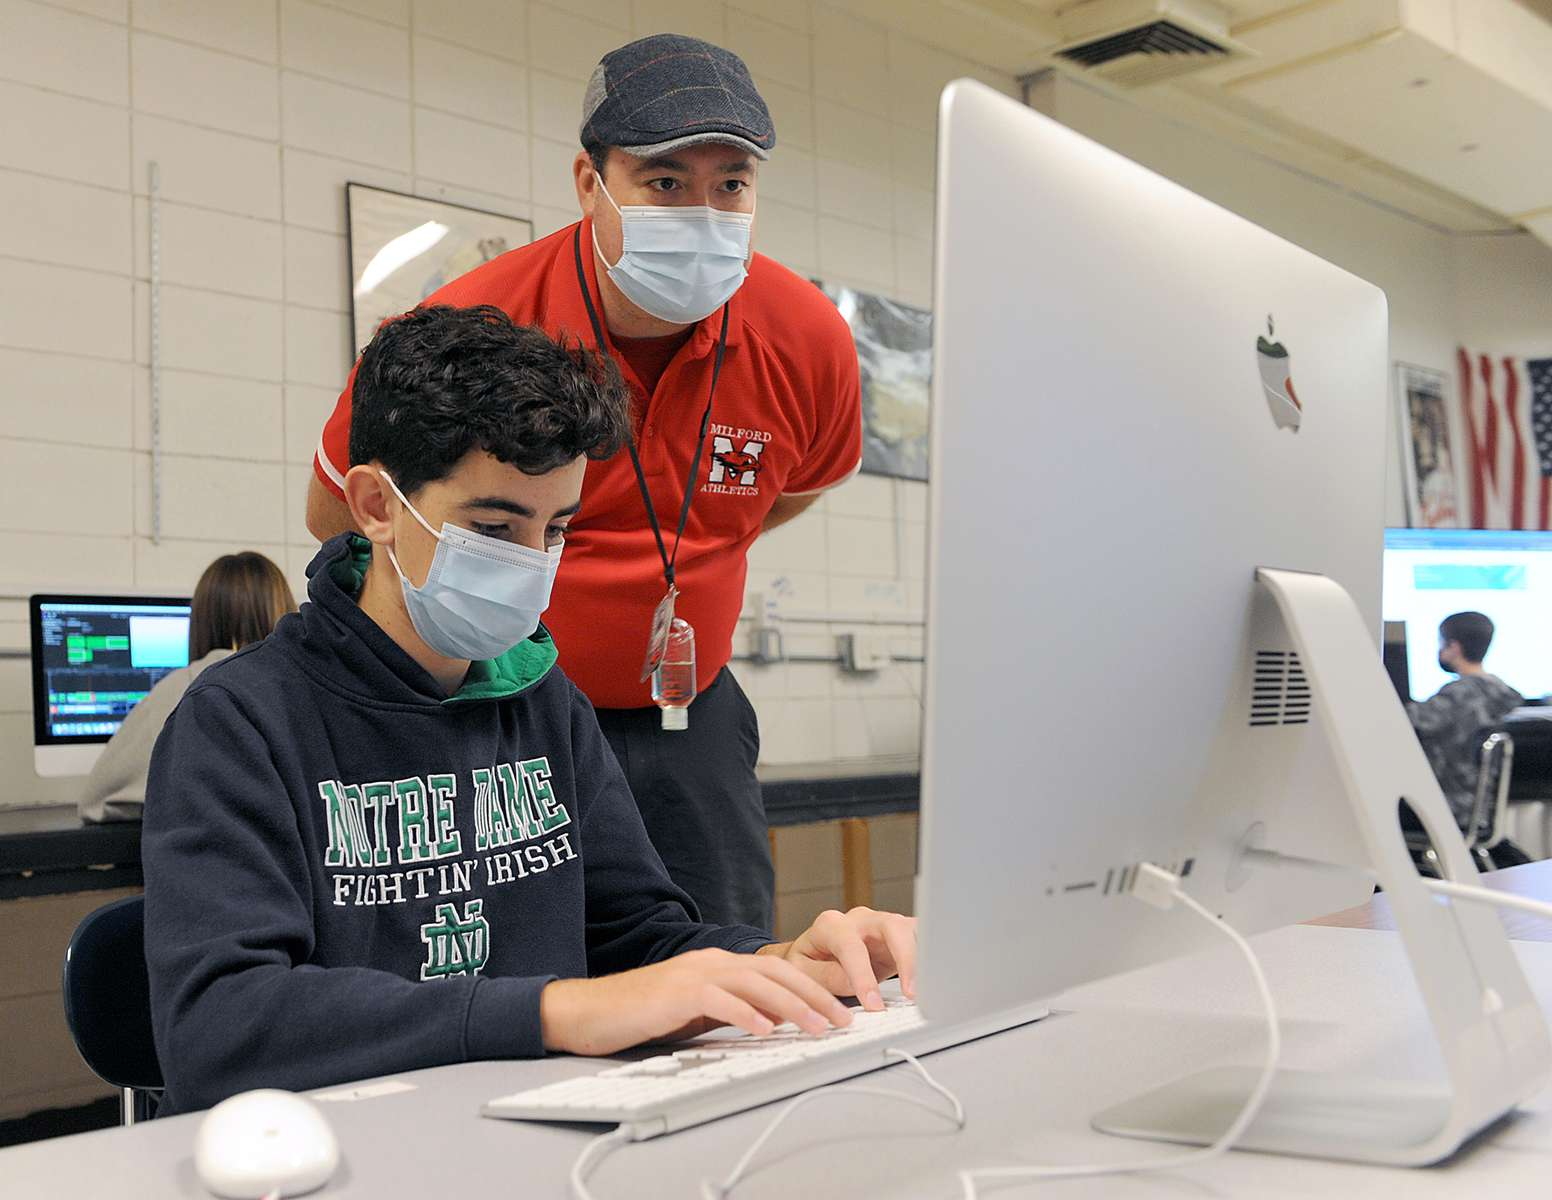 10/15/20- MILFORD - At Milford High School, ninth grader Joe Pezza edits a video with Final Cut Pro in teacher Jeremy Folster's video production class.  [Daily News and Wicked Local Staff Photo/Art Illman]